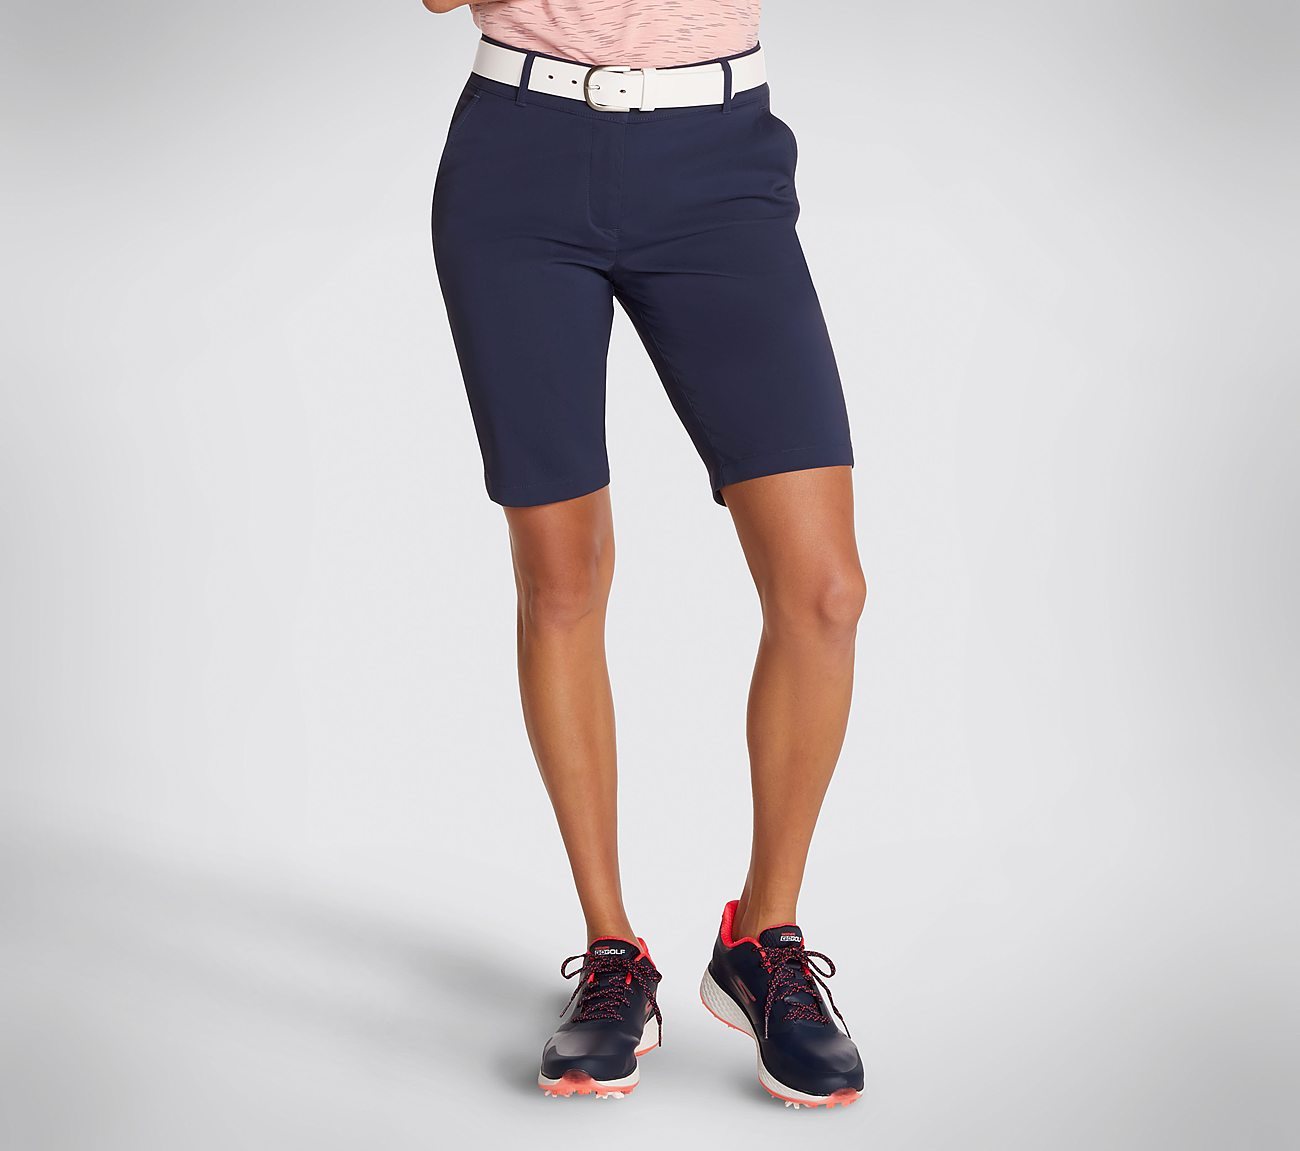 Skechers GO GOLF High Side Bermuda Short